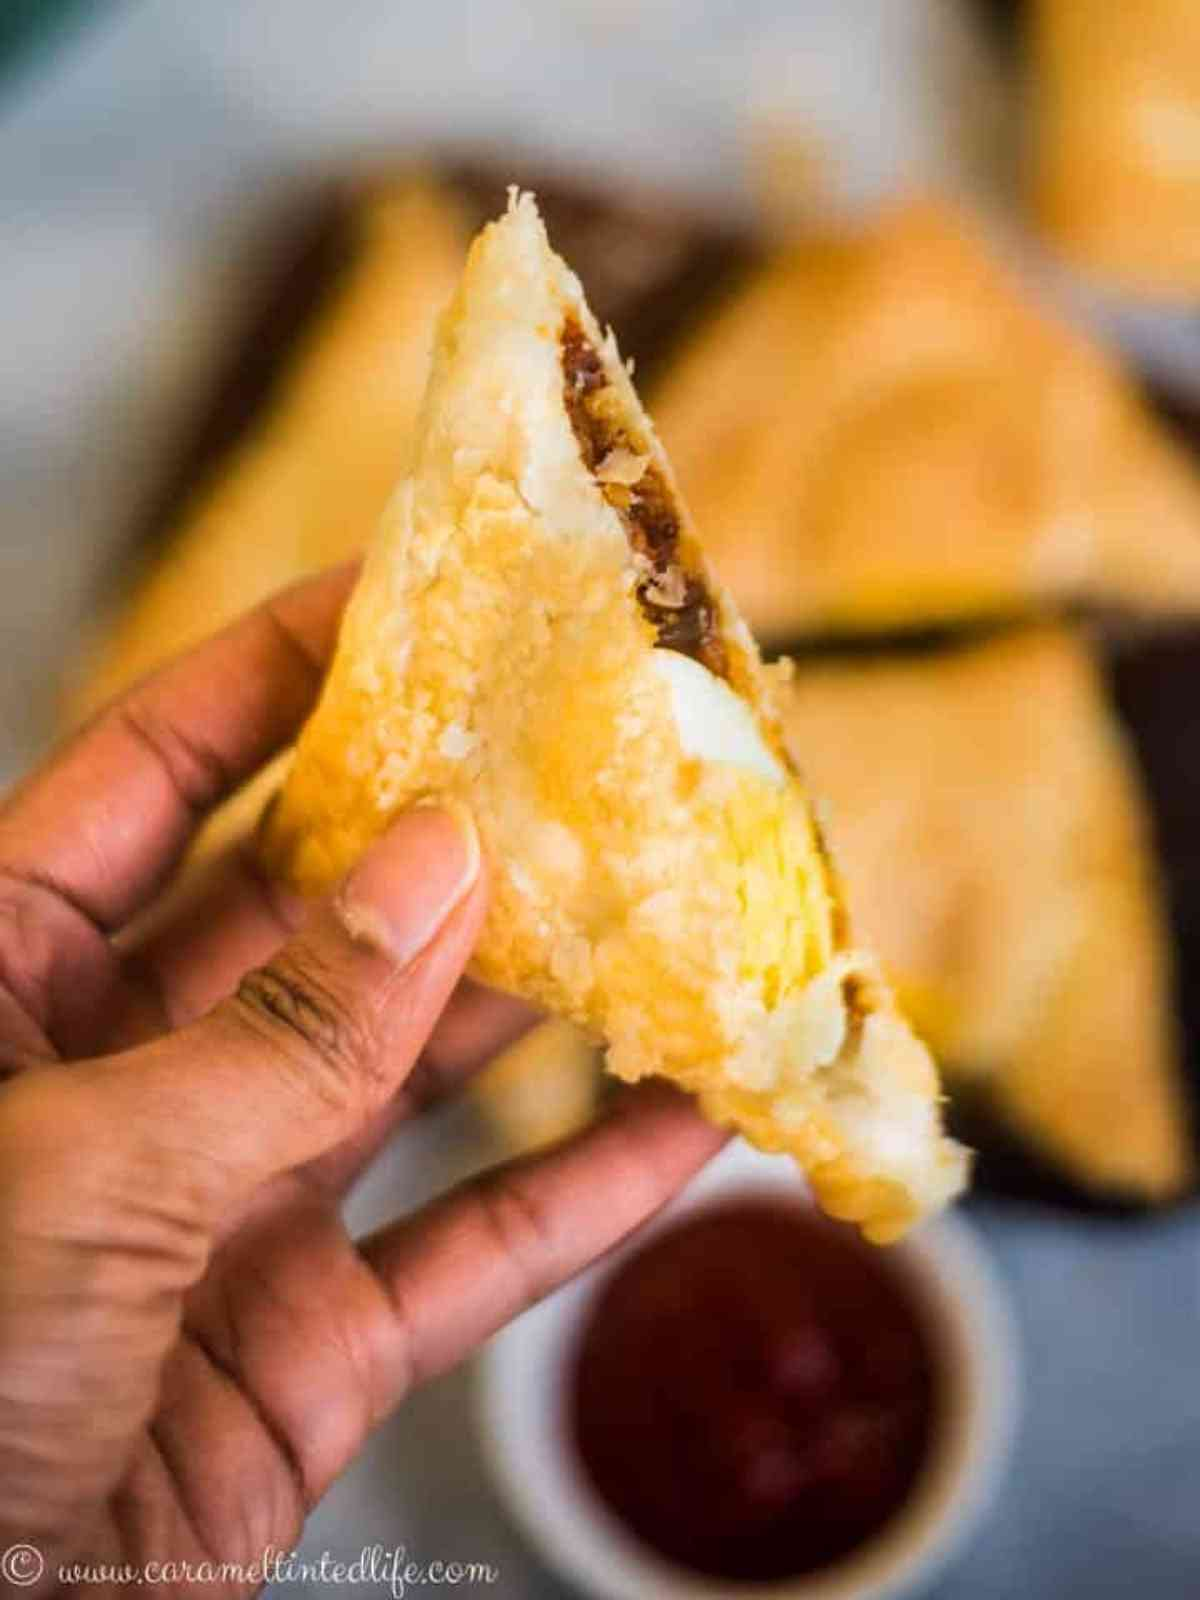 Sliced egg puffs held in a hand